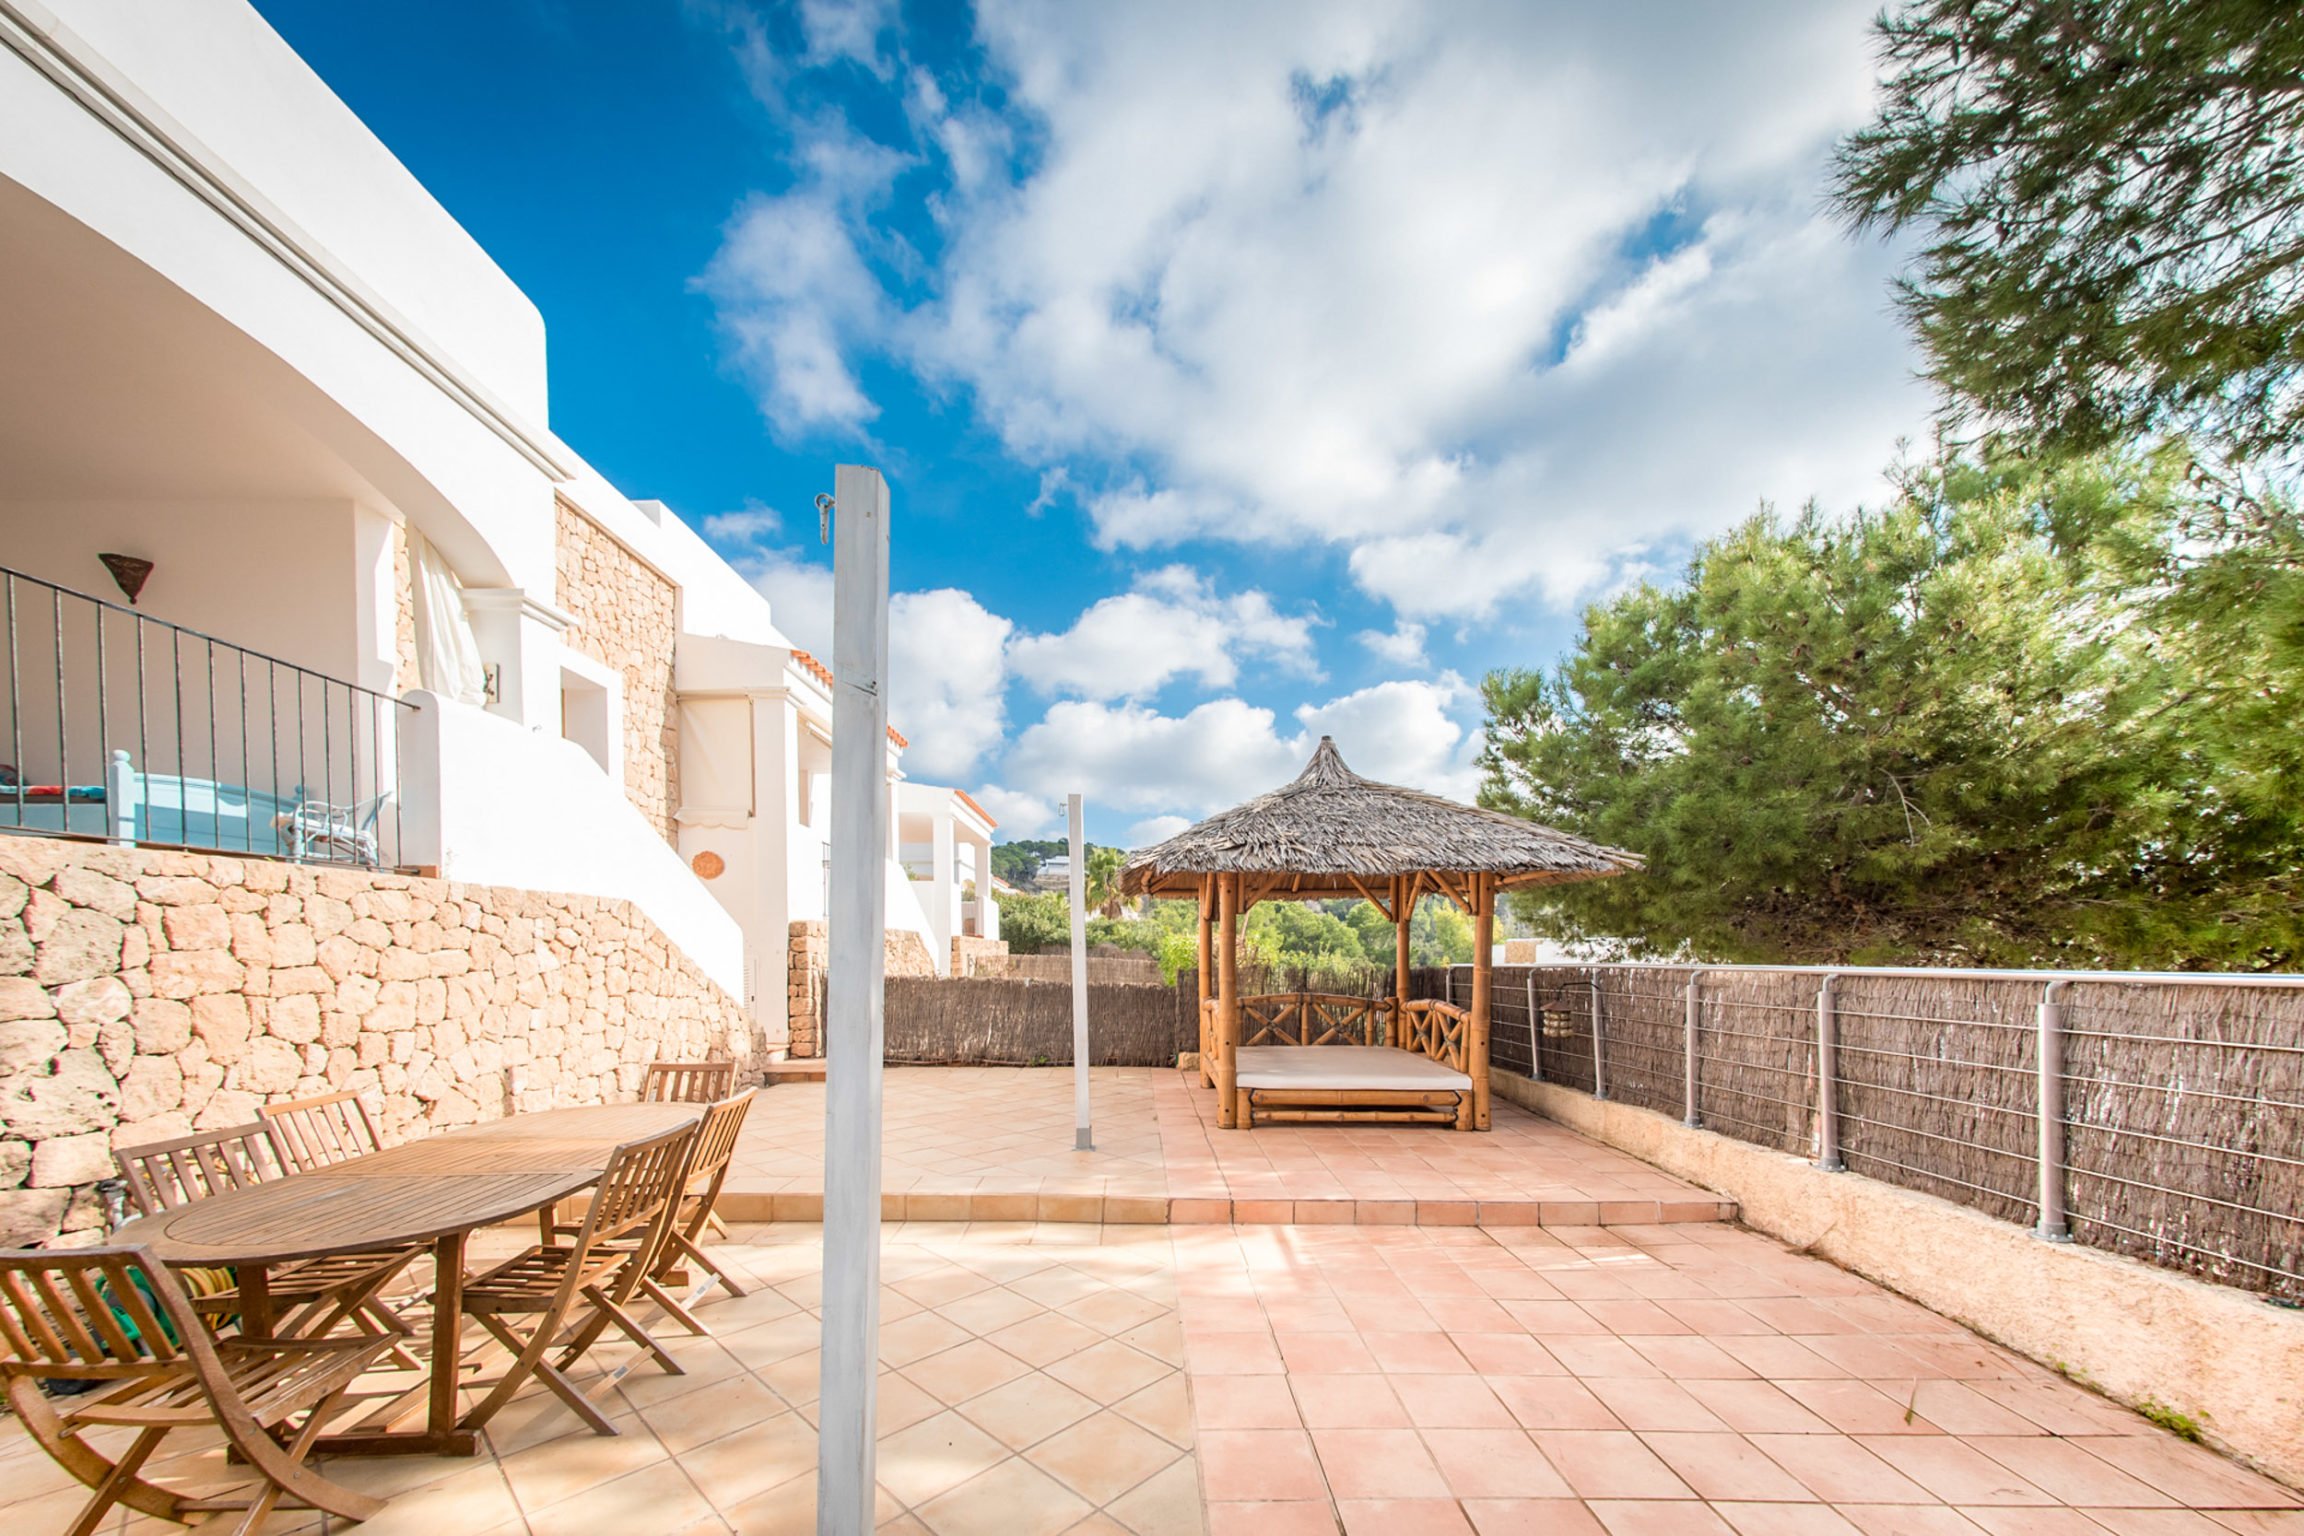 https://www.white-ibiza.com/wp-content/uploads/2020/03/white-ibiza-property-WI137-2020-15-2304x1536.jpg